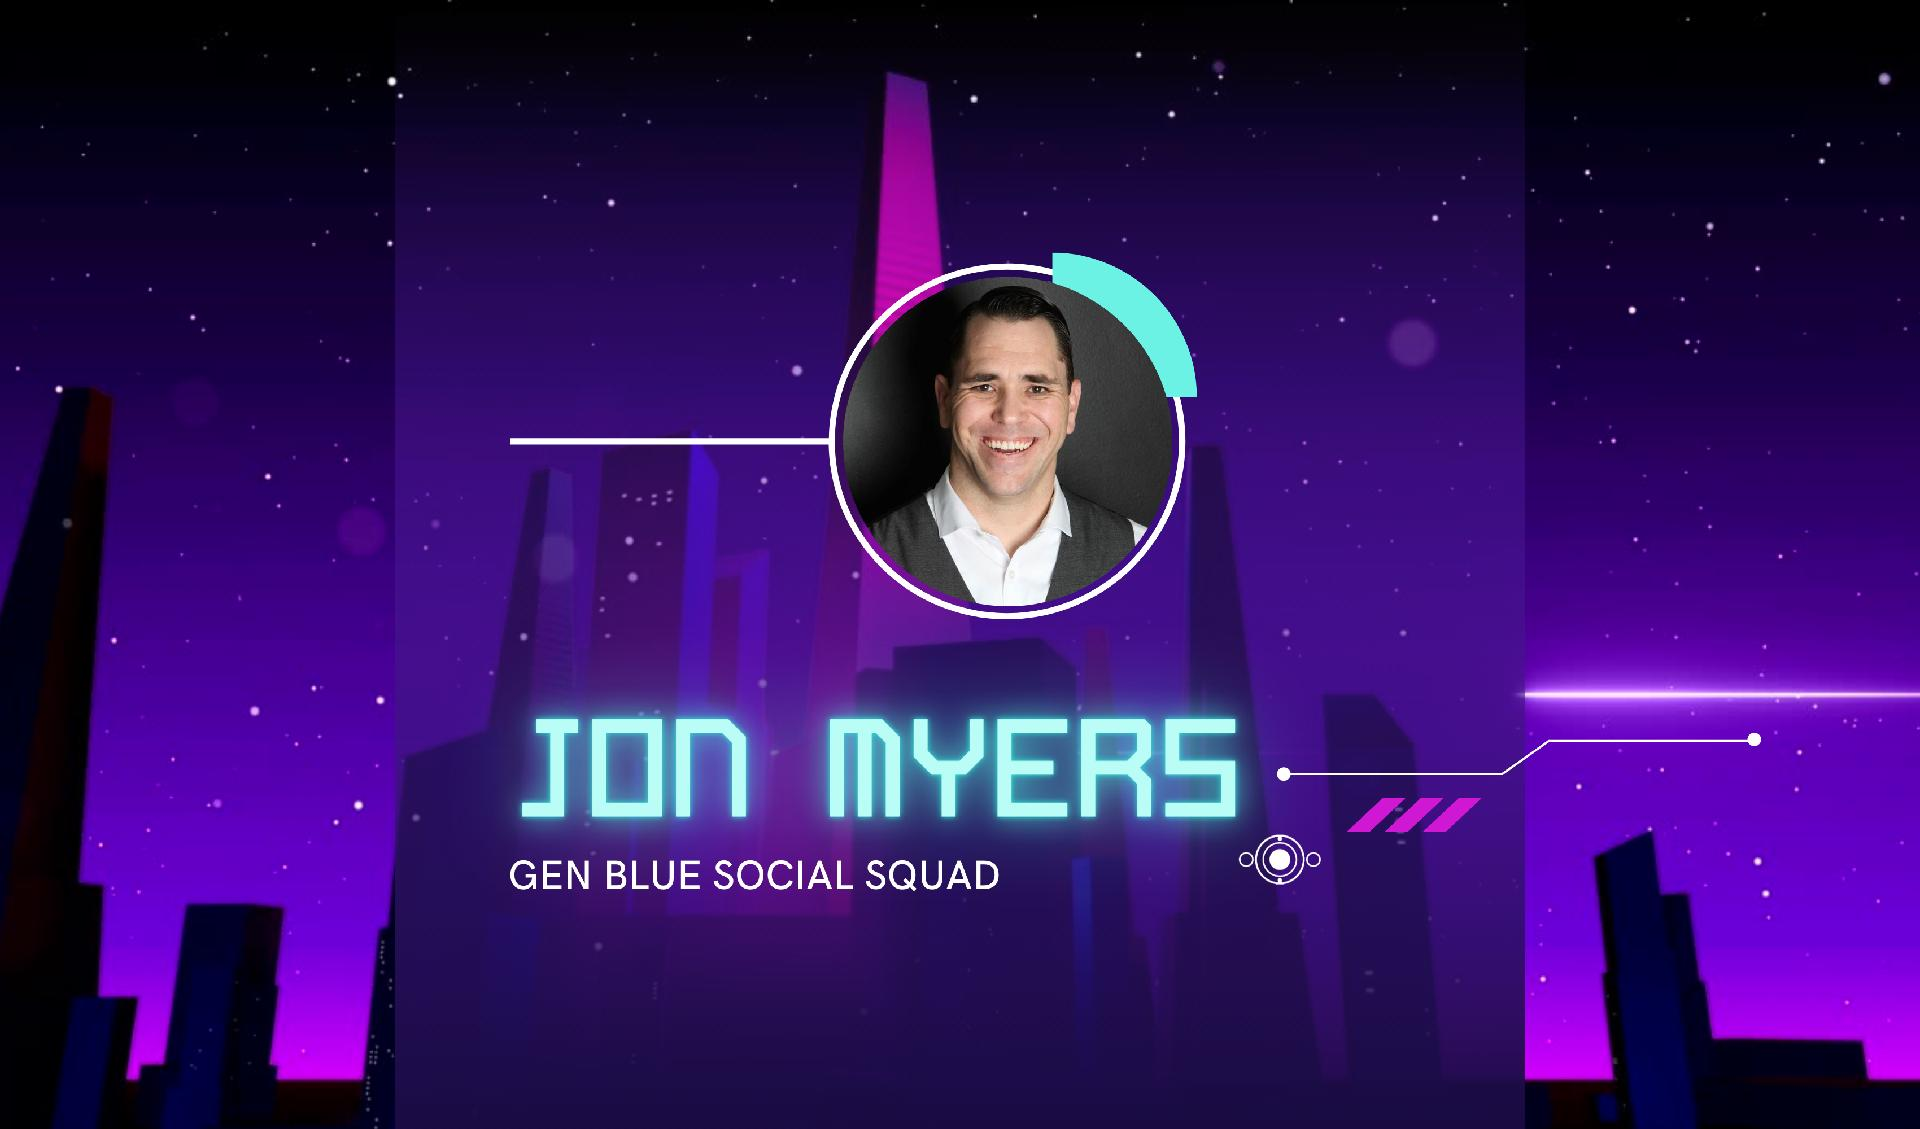 Jonathan Myers Named to National Coldwell Banker Gen Blue Social Squad Main Photo